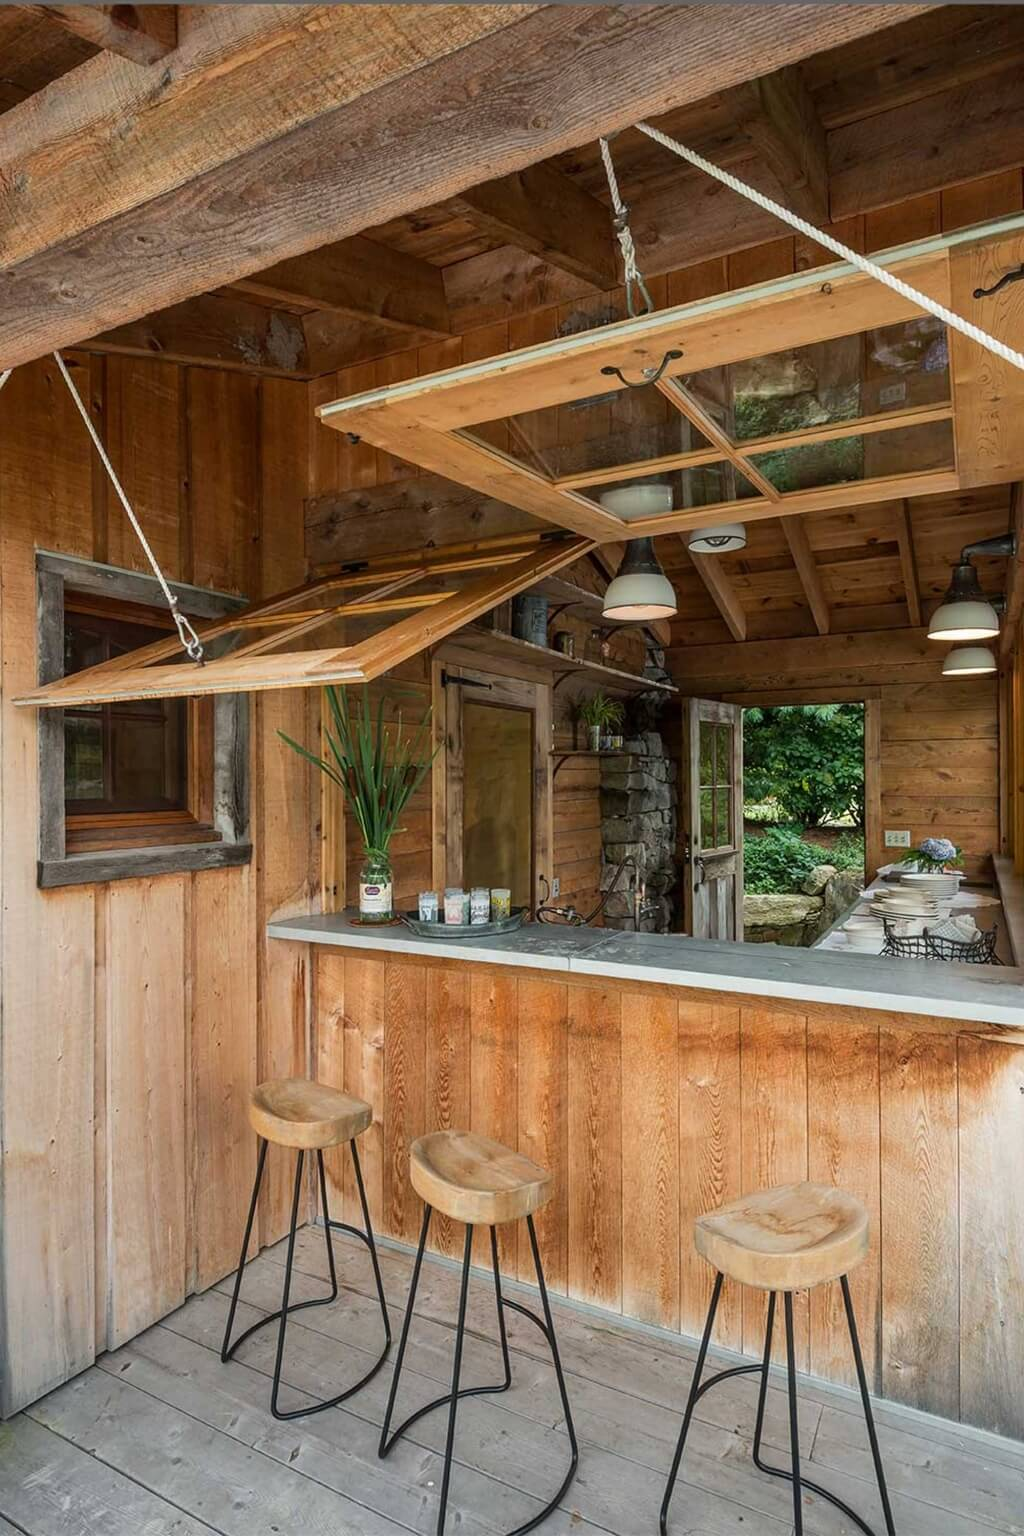 27 Best Outdoor Kitchen Ideas and Designs for 2020 on Patio With Bar Ideas id=25166